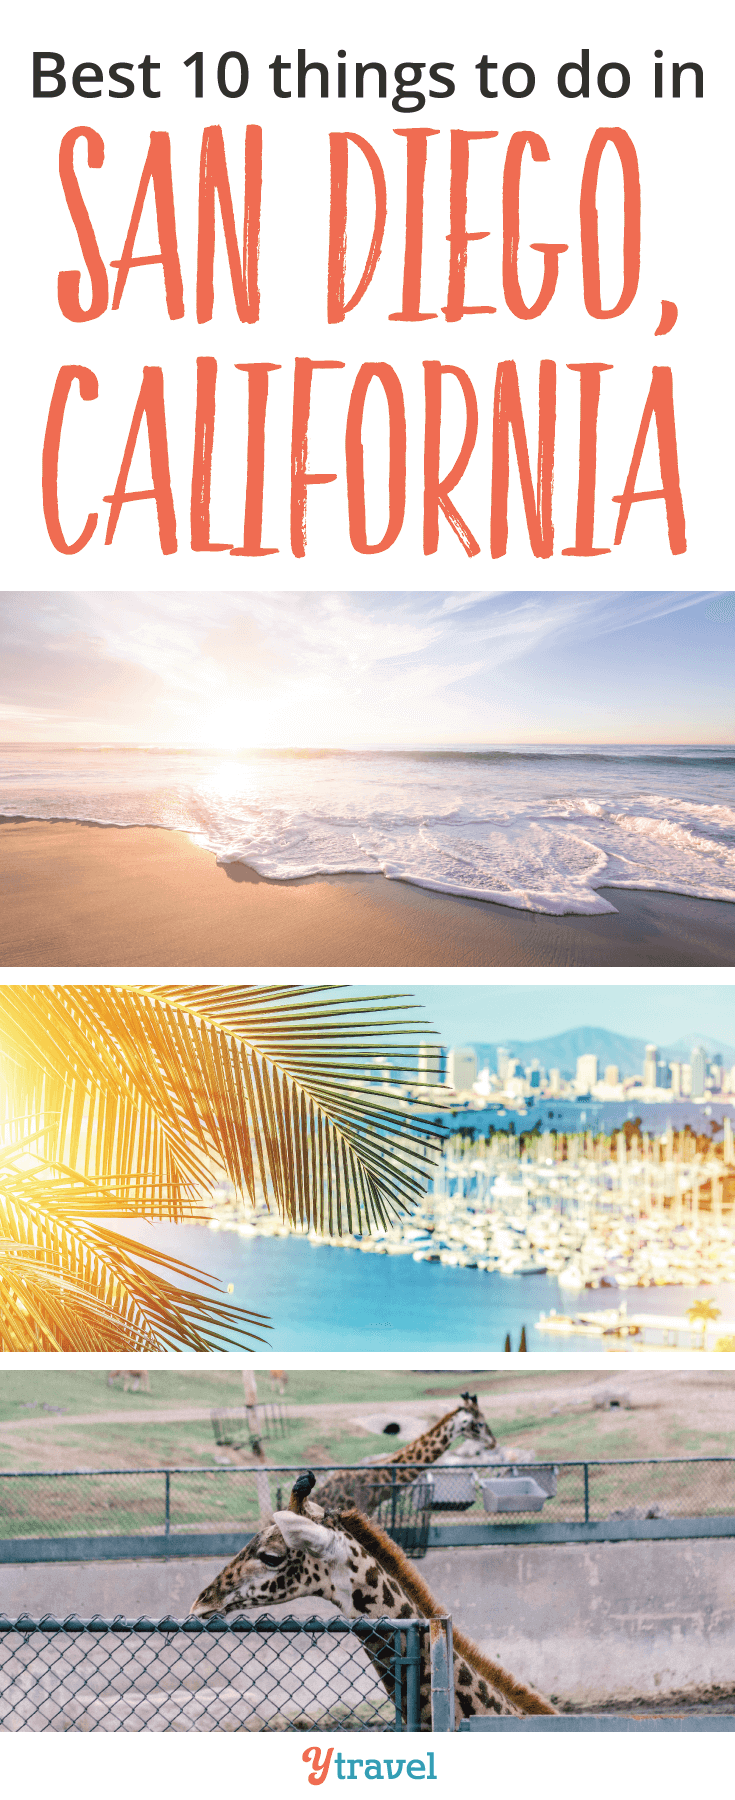 Are you looking for things to do in San Diego? Check out the beautiful beaches, eat like a local and visit the zoo!